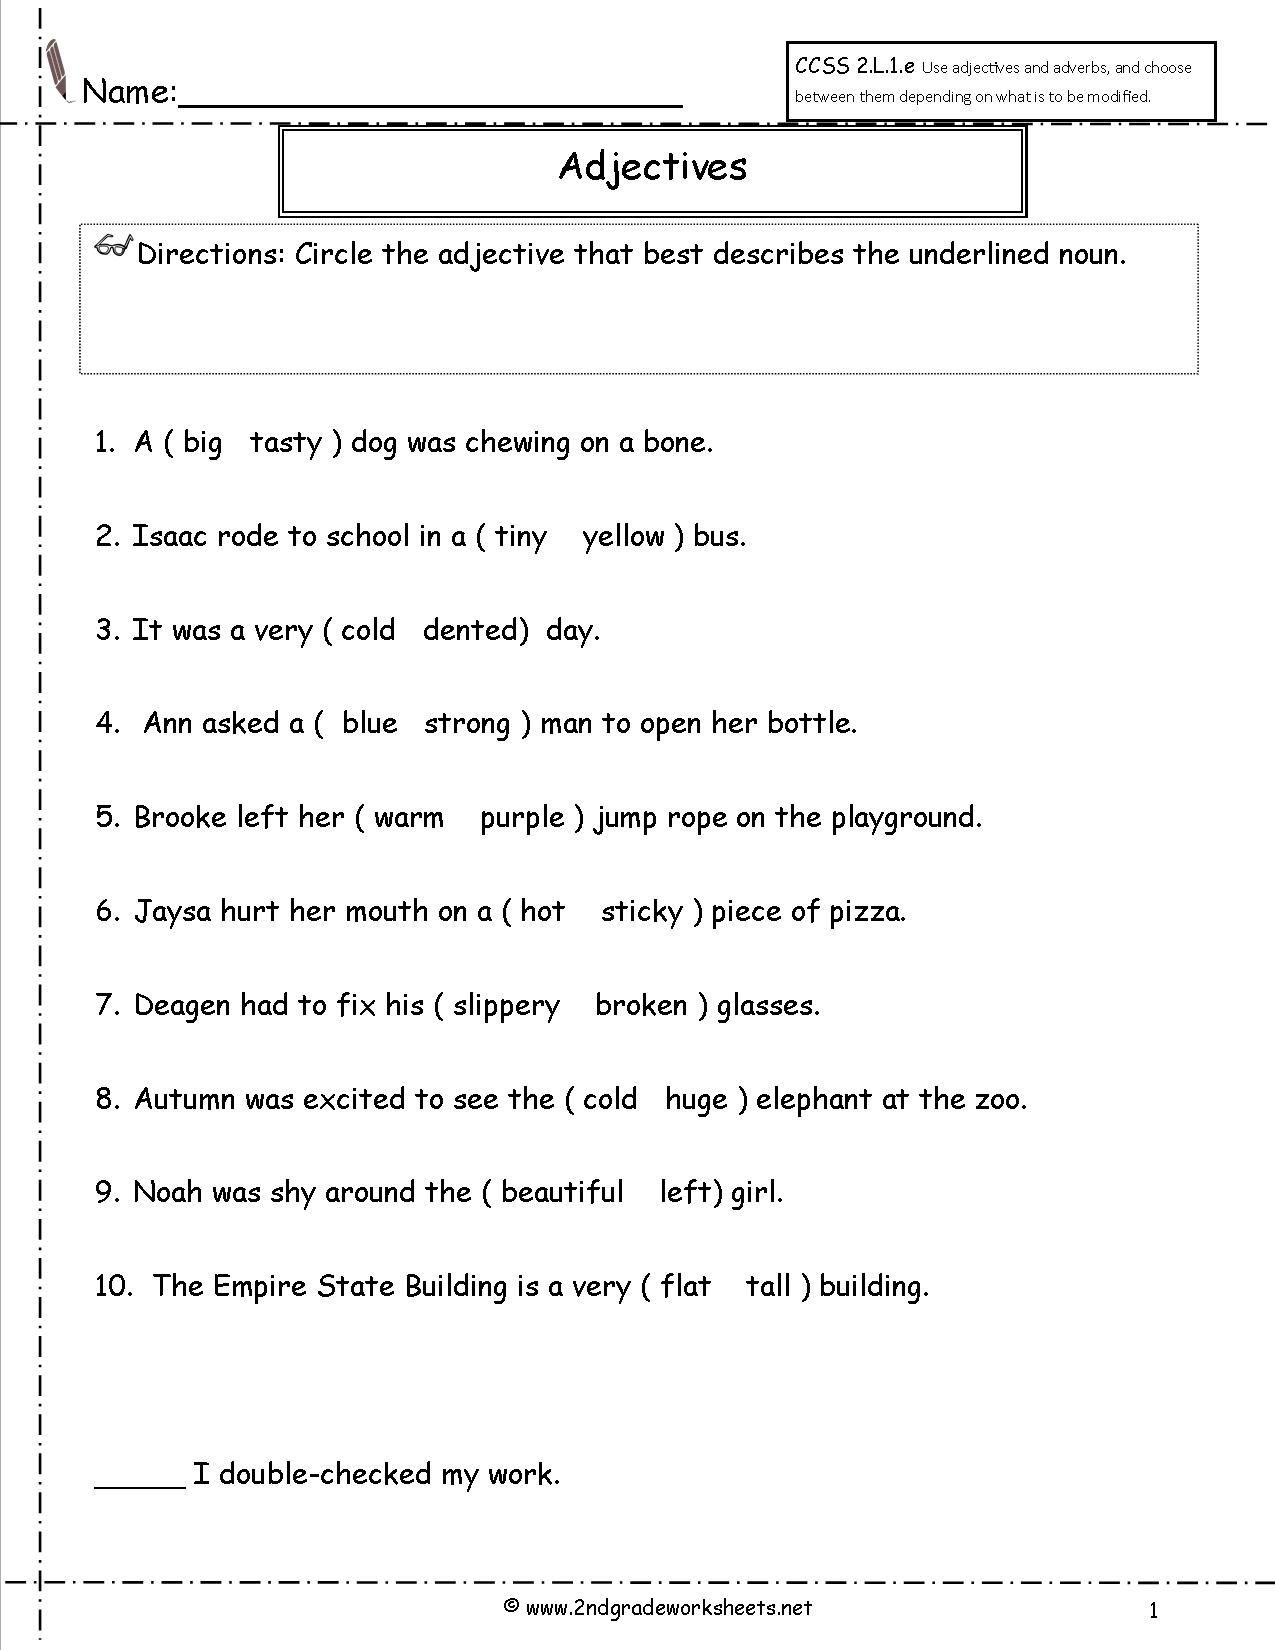 Free Printable Adjective Worksheets Adjectives Worksheet